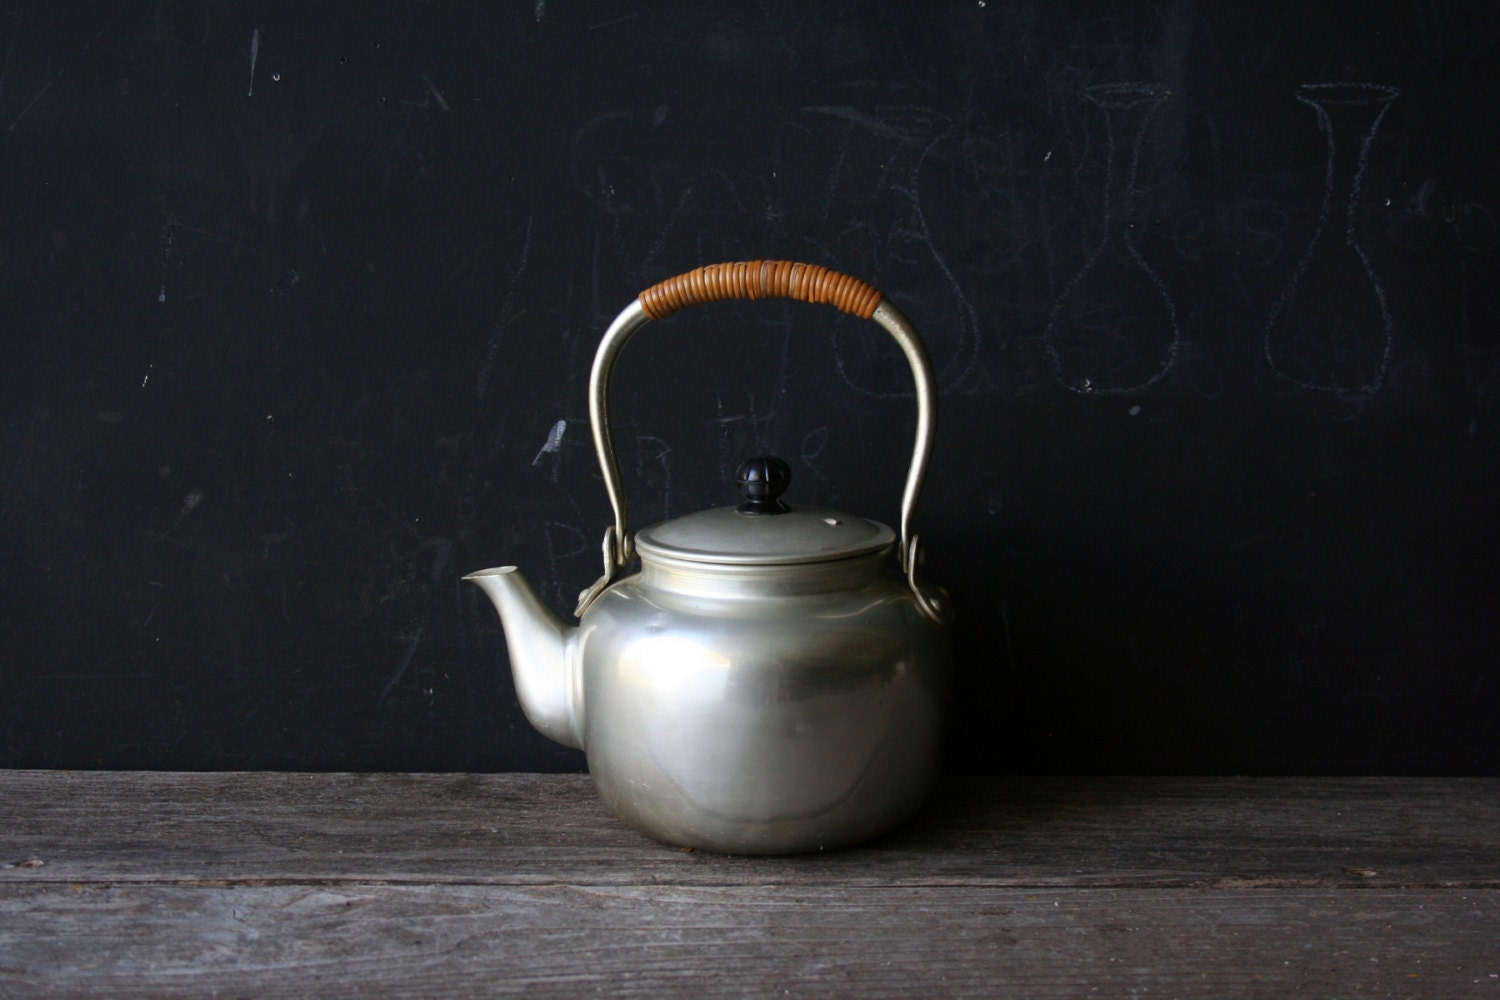 Vintage Personal Teapot Silver Color Aluminum  and Bamboo From Nowvintage on Etsy - nowvintage